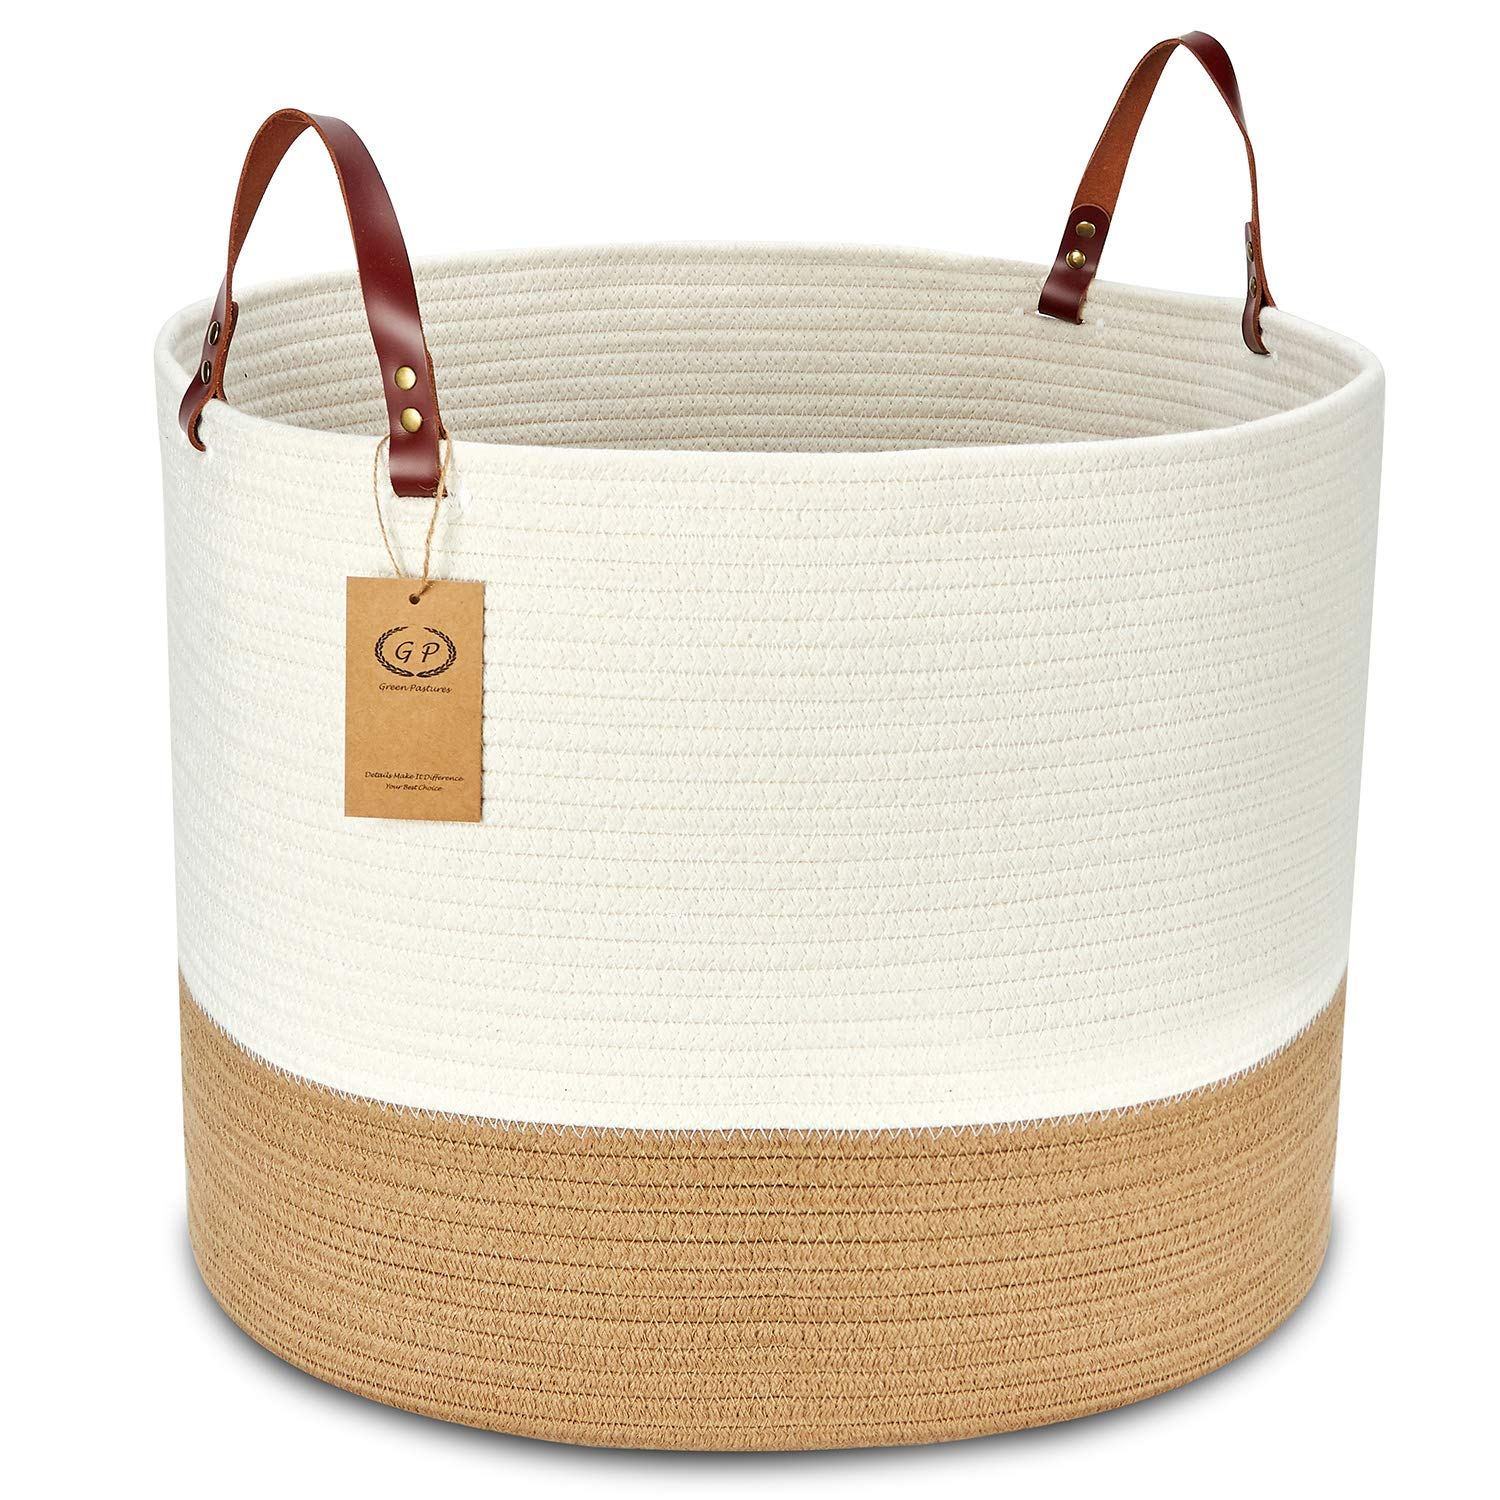 """GreenPastures XXLarge Woven Laundry Basket, 20'' x 15"""" Decorative Blanket Storage Basket with Real Leather Handles, Cotton Rope Basket Bin for Baby Kids Pets Toy (Off White/Brown/Leather Handles)"""